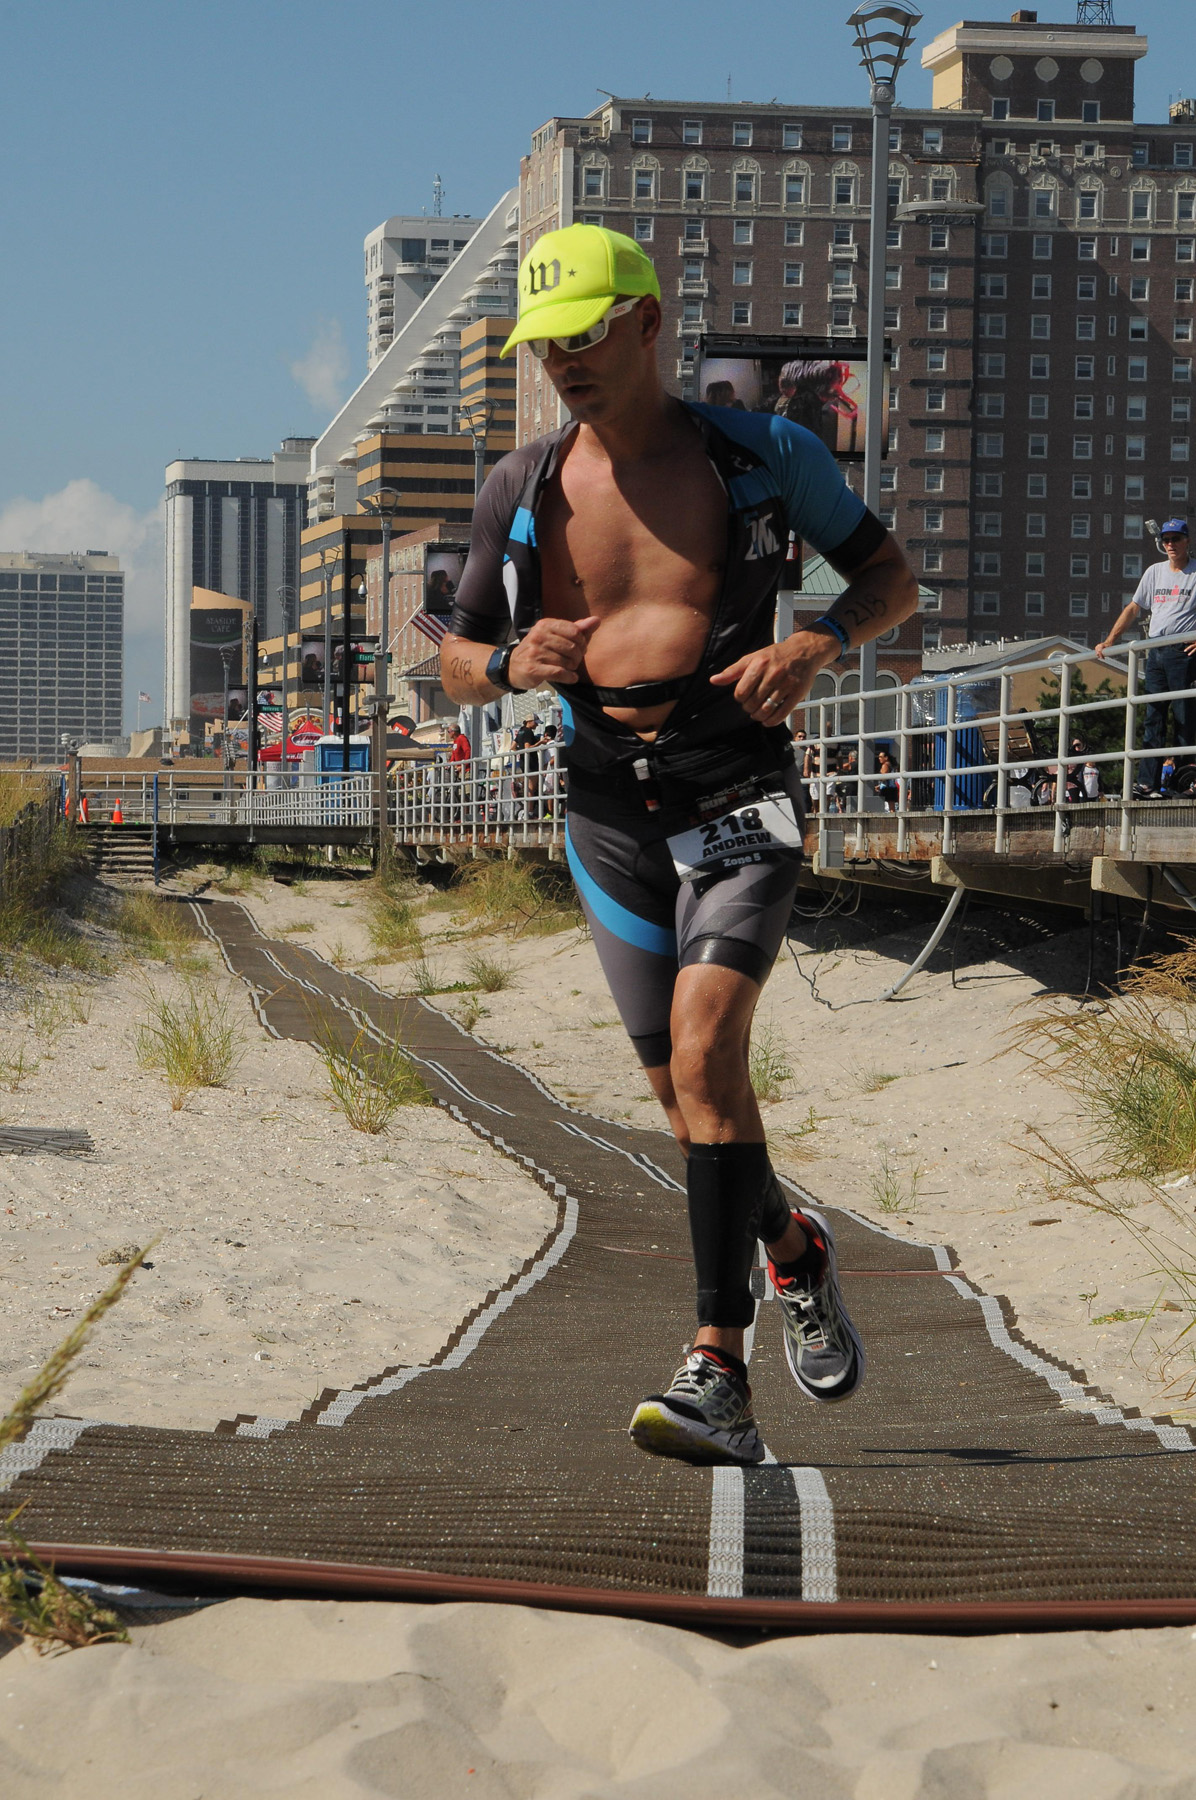 boardwalk city bg beach runway - Ironman 70.3 Atlantic City